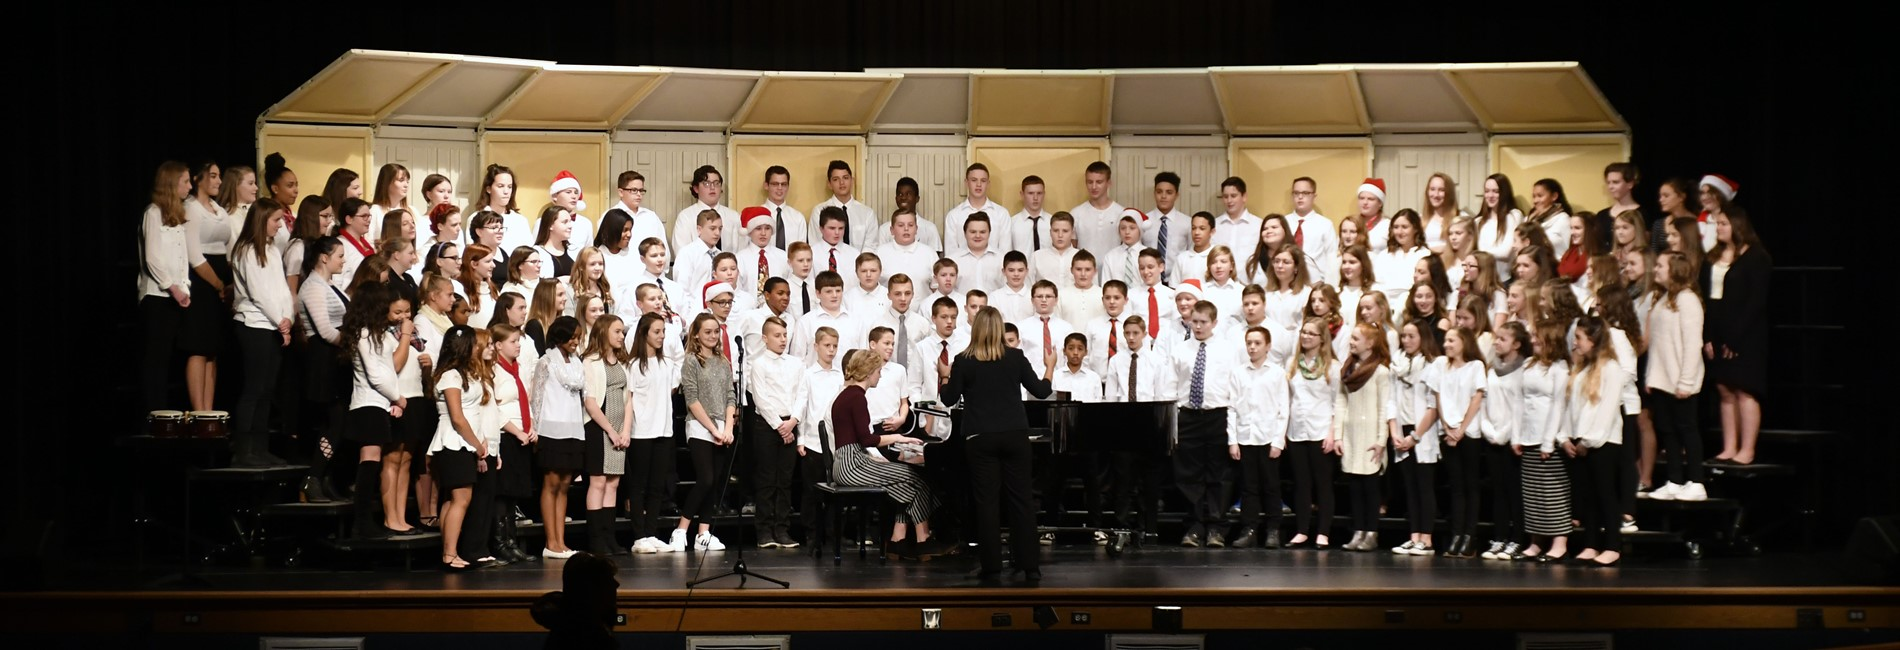 Morton 7th Grade Choir